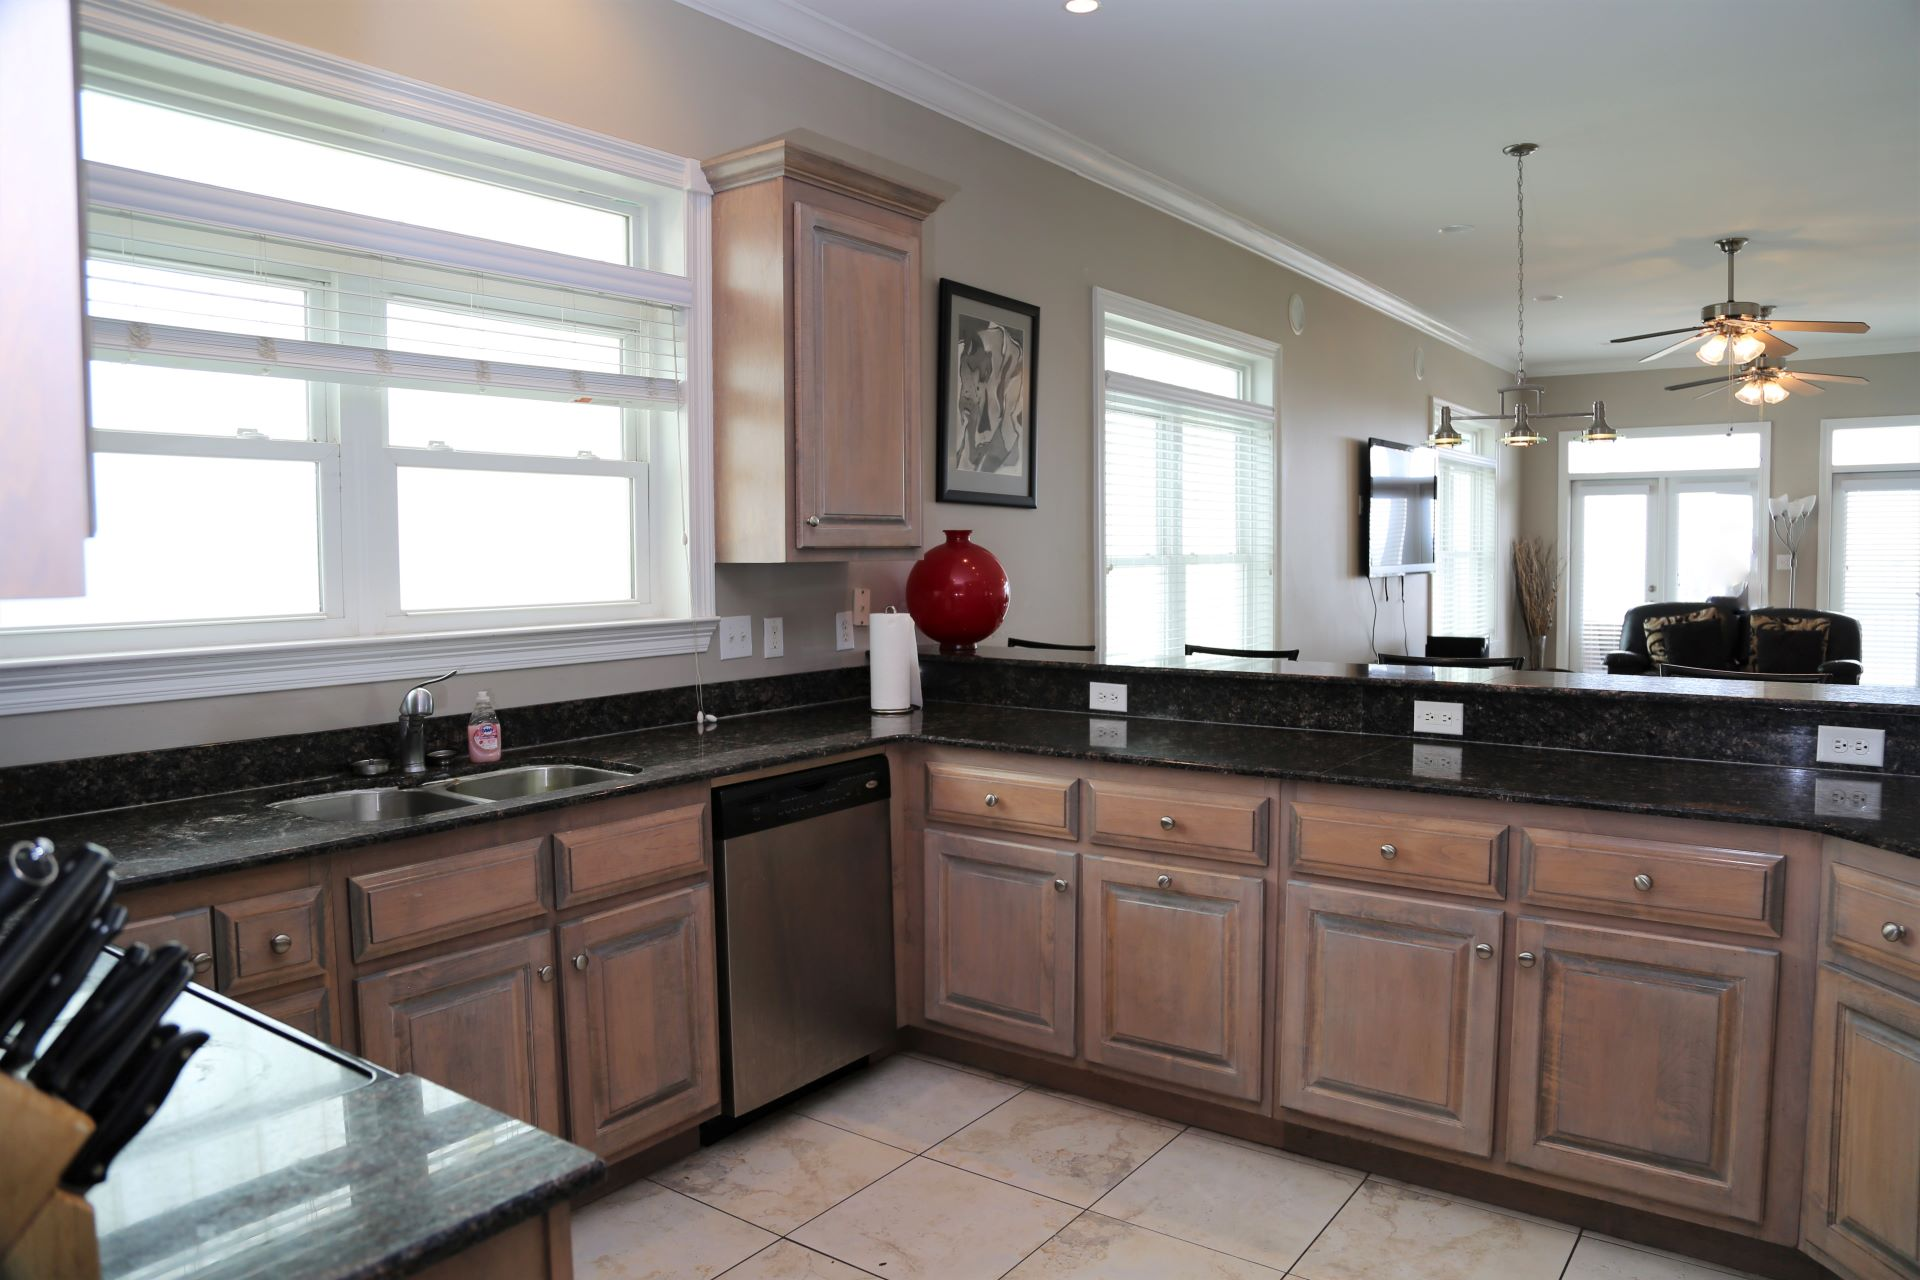 Plentiful counter space for prepping home-cooked meals.